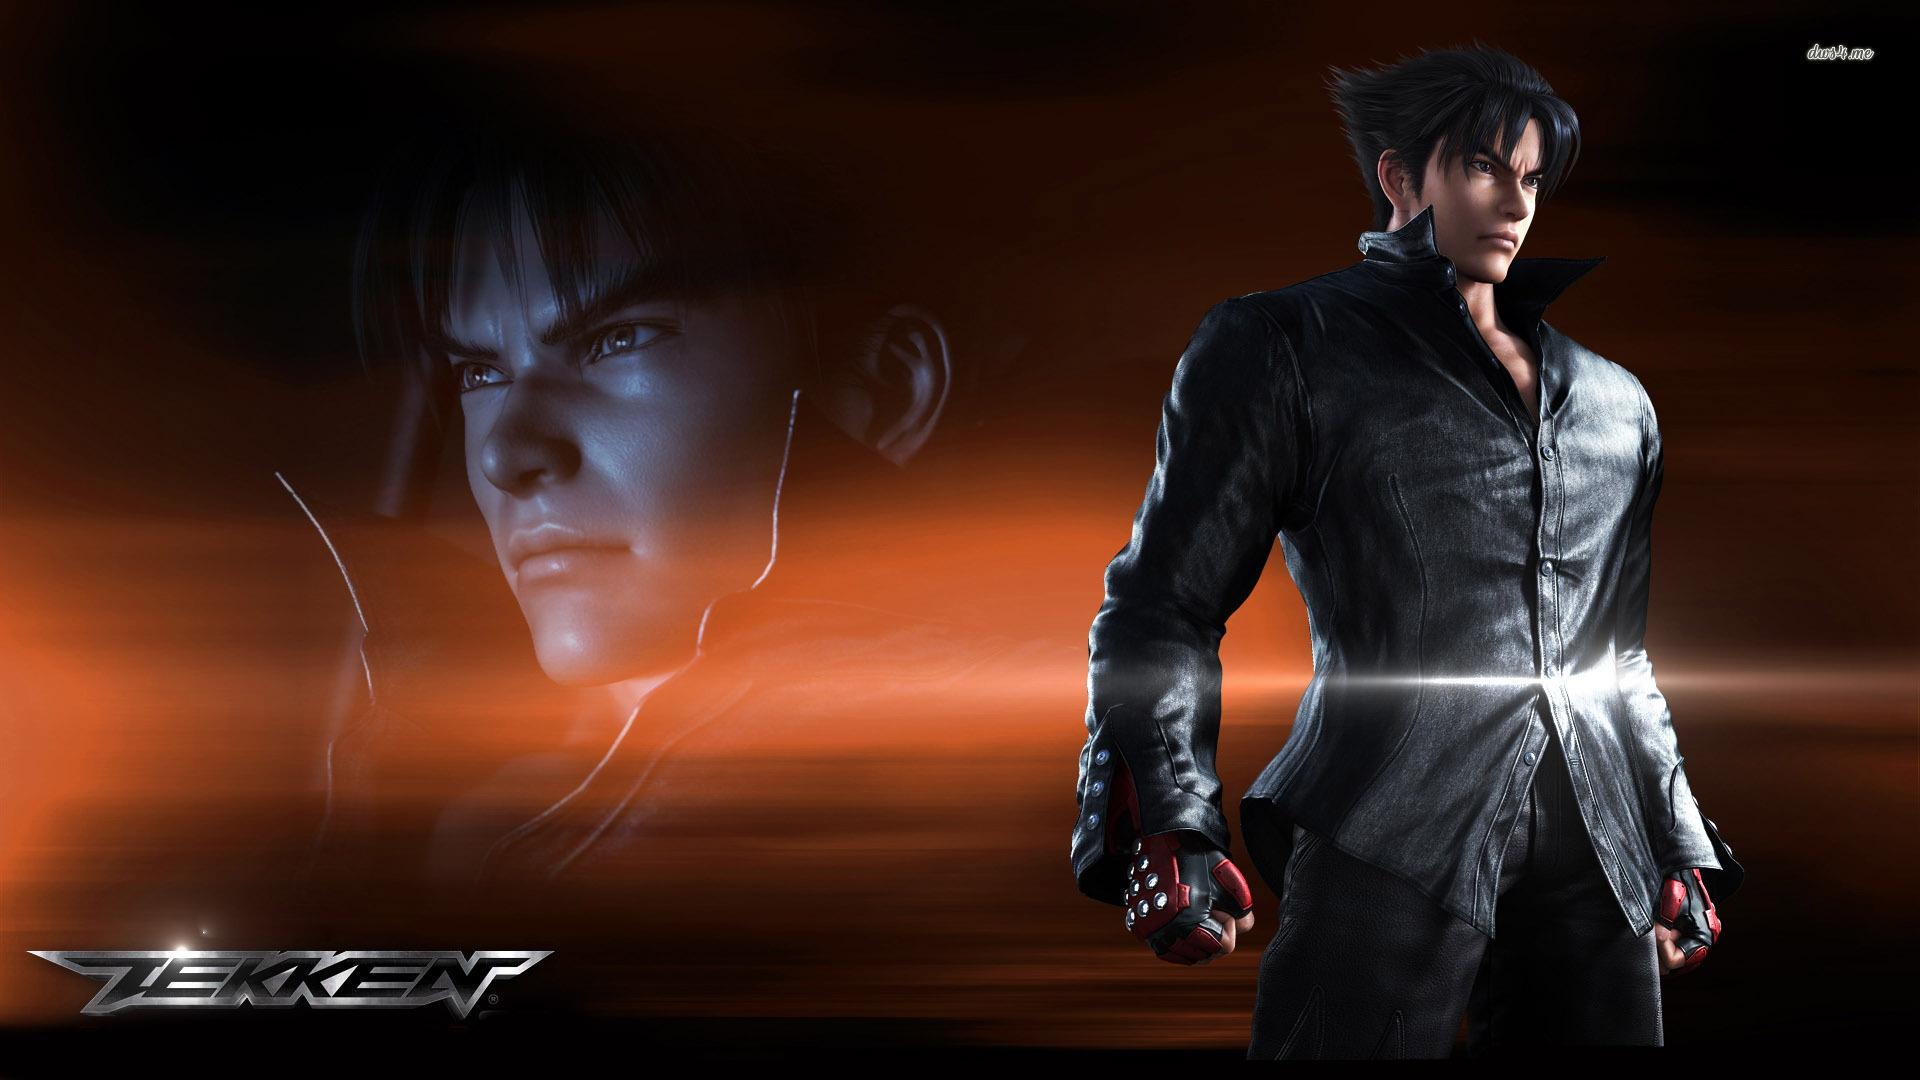 Kazuya Mishima - Tekken wallpaper - Game wallpapers - #10020